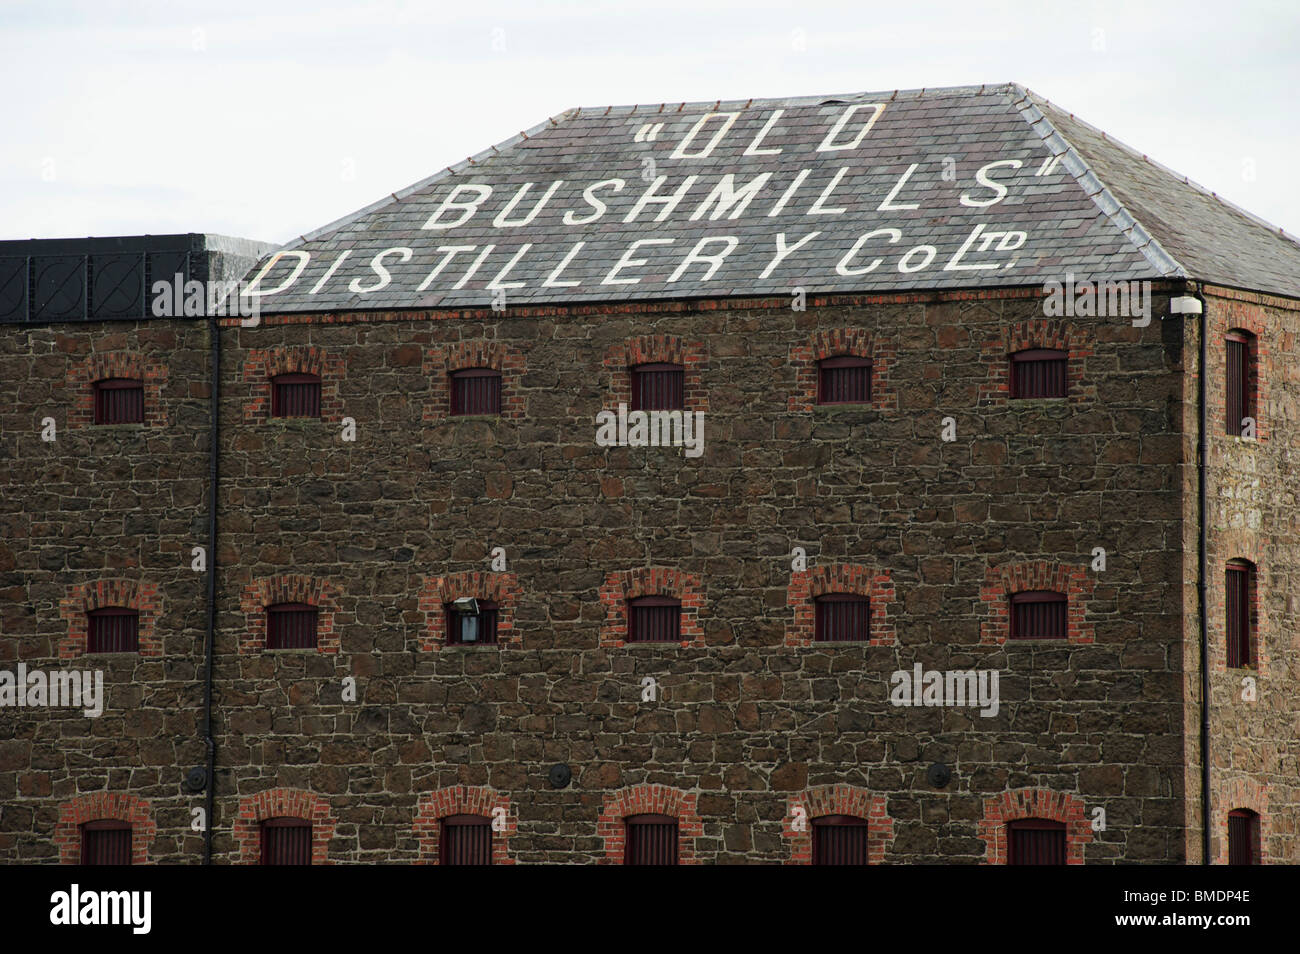 Old Bushmills Distillery, Bushmills, County Antrim, Northern Ireland, UK - Stock Image